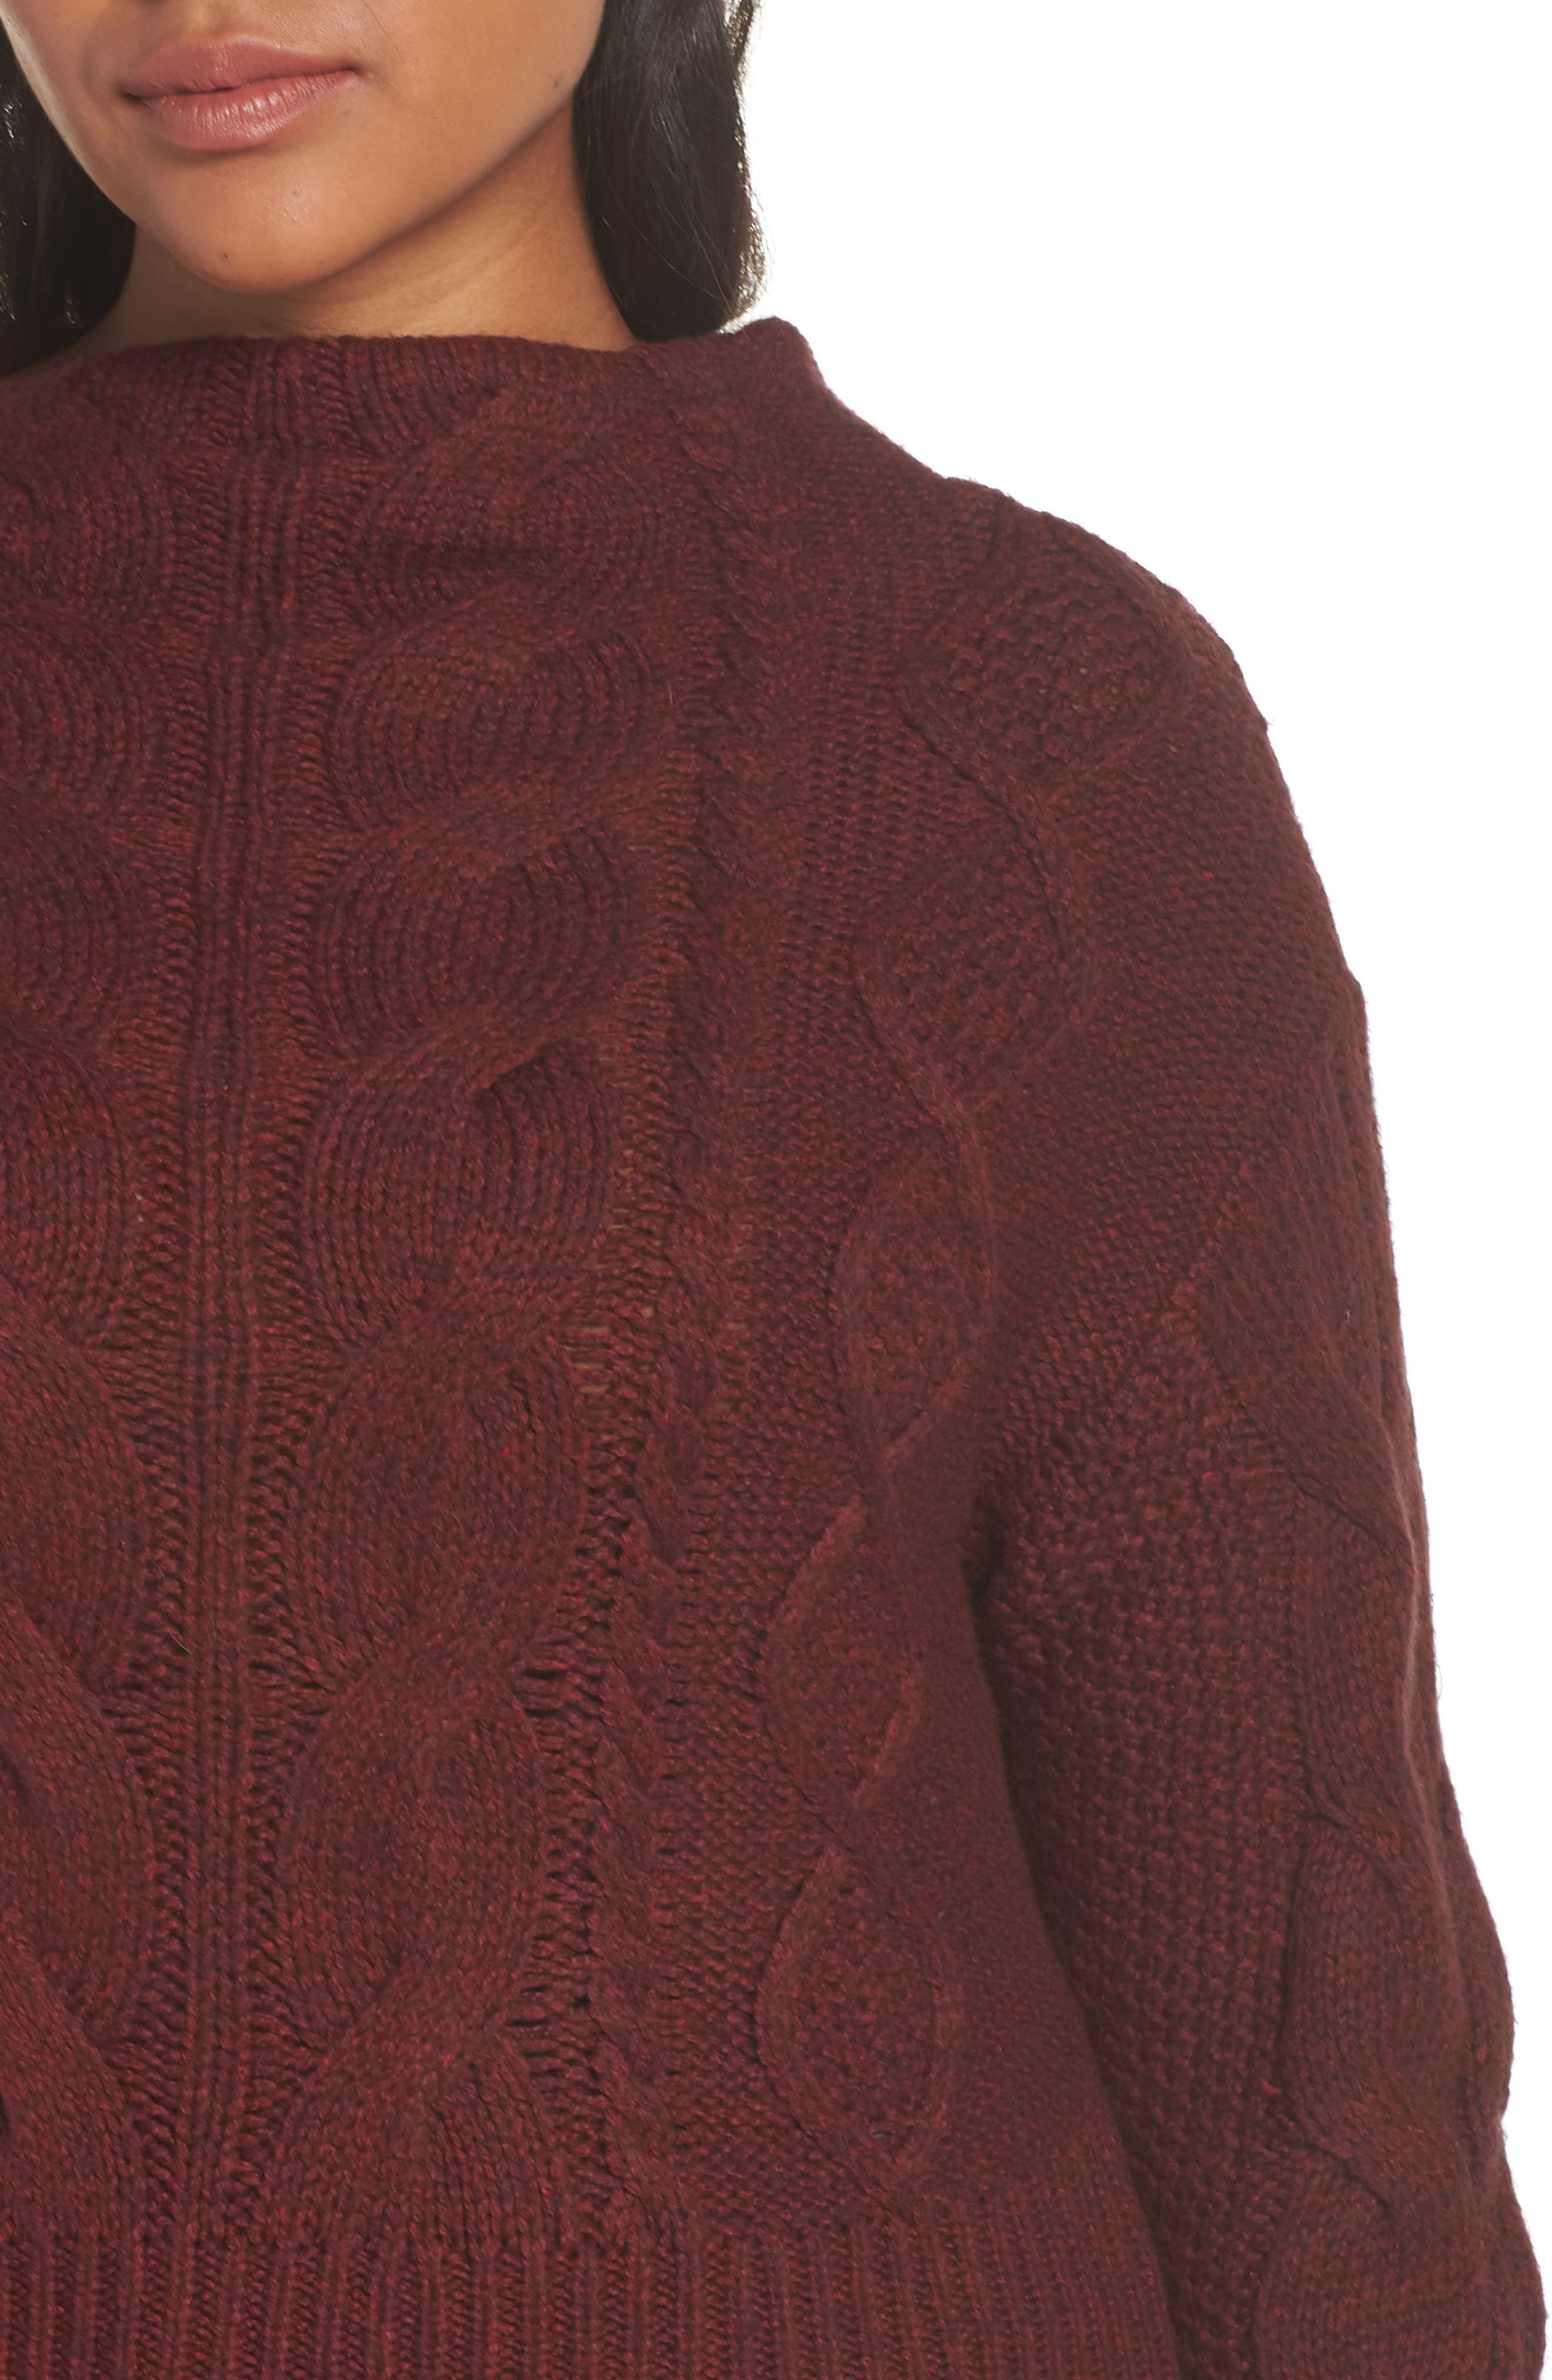 Cotton Blend Cable Knit Sweater,                             Alternate thumbnail 6, color,                             MANOR RED